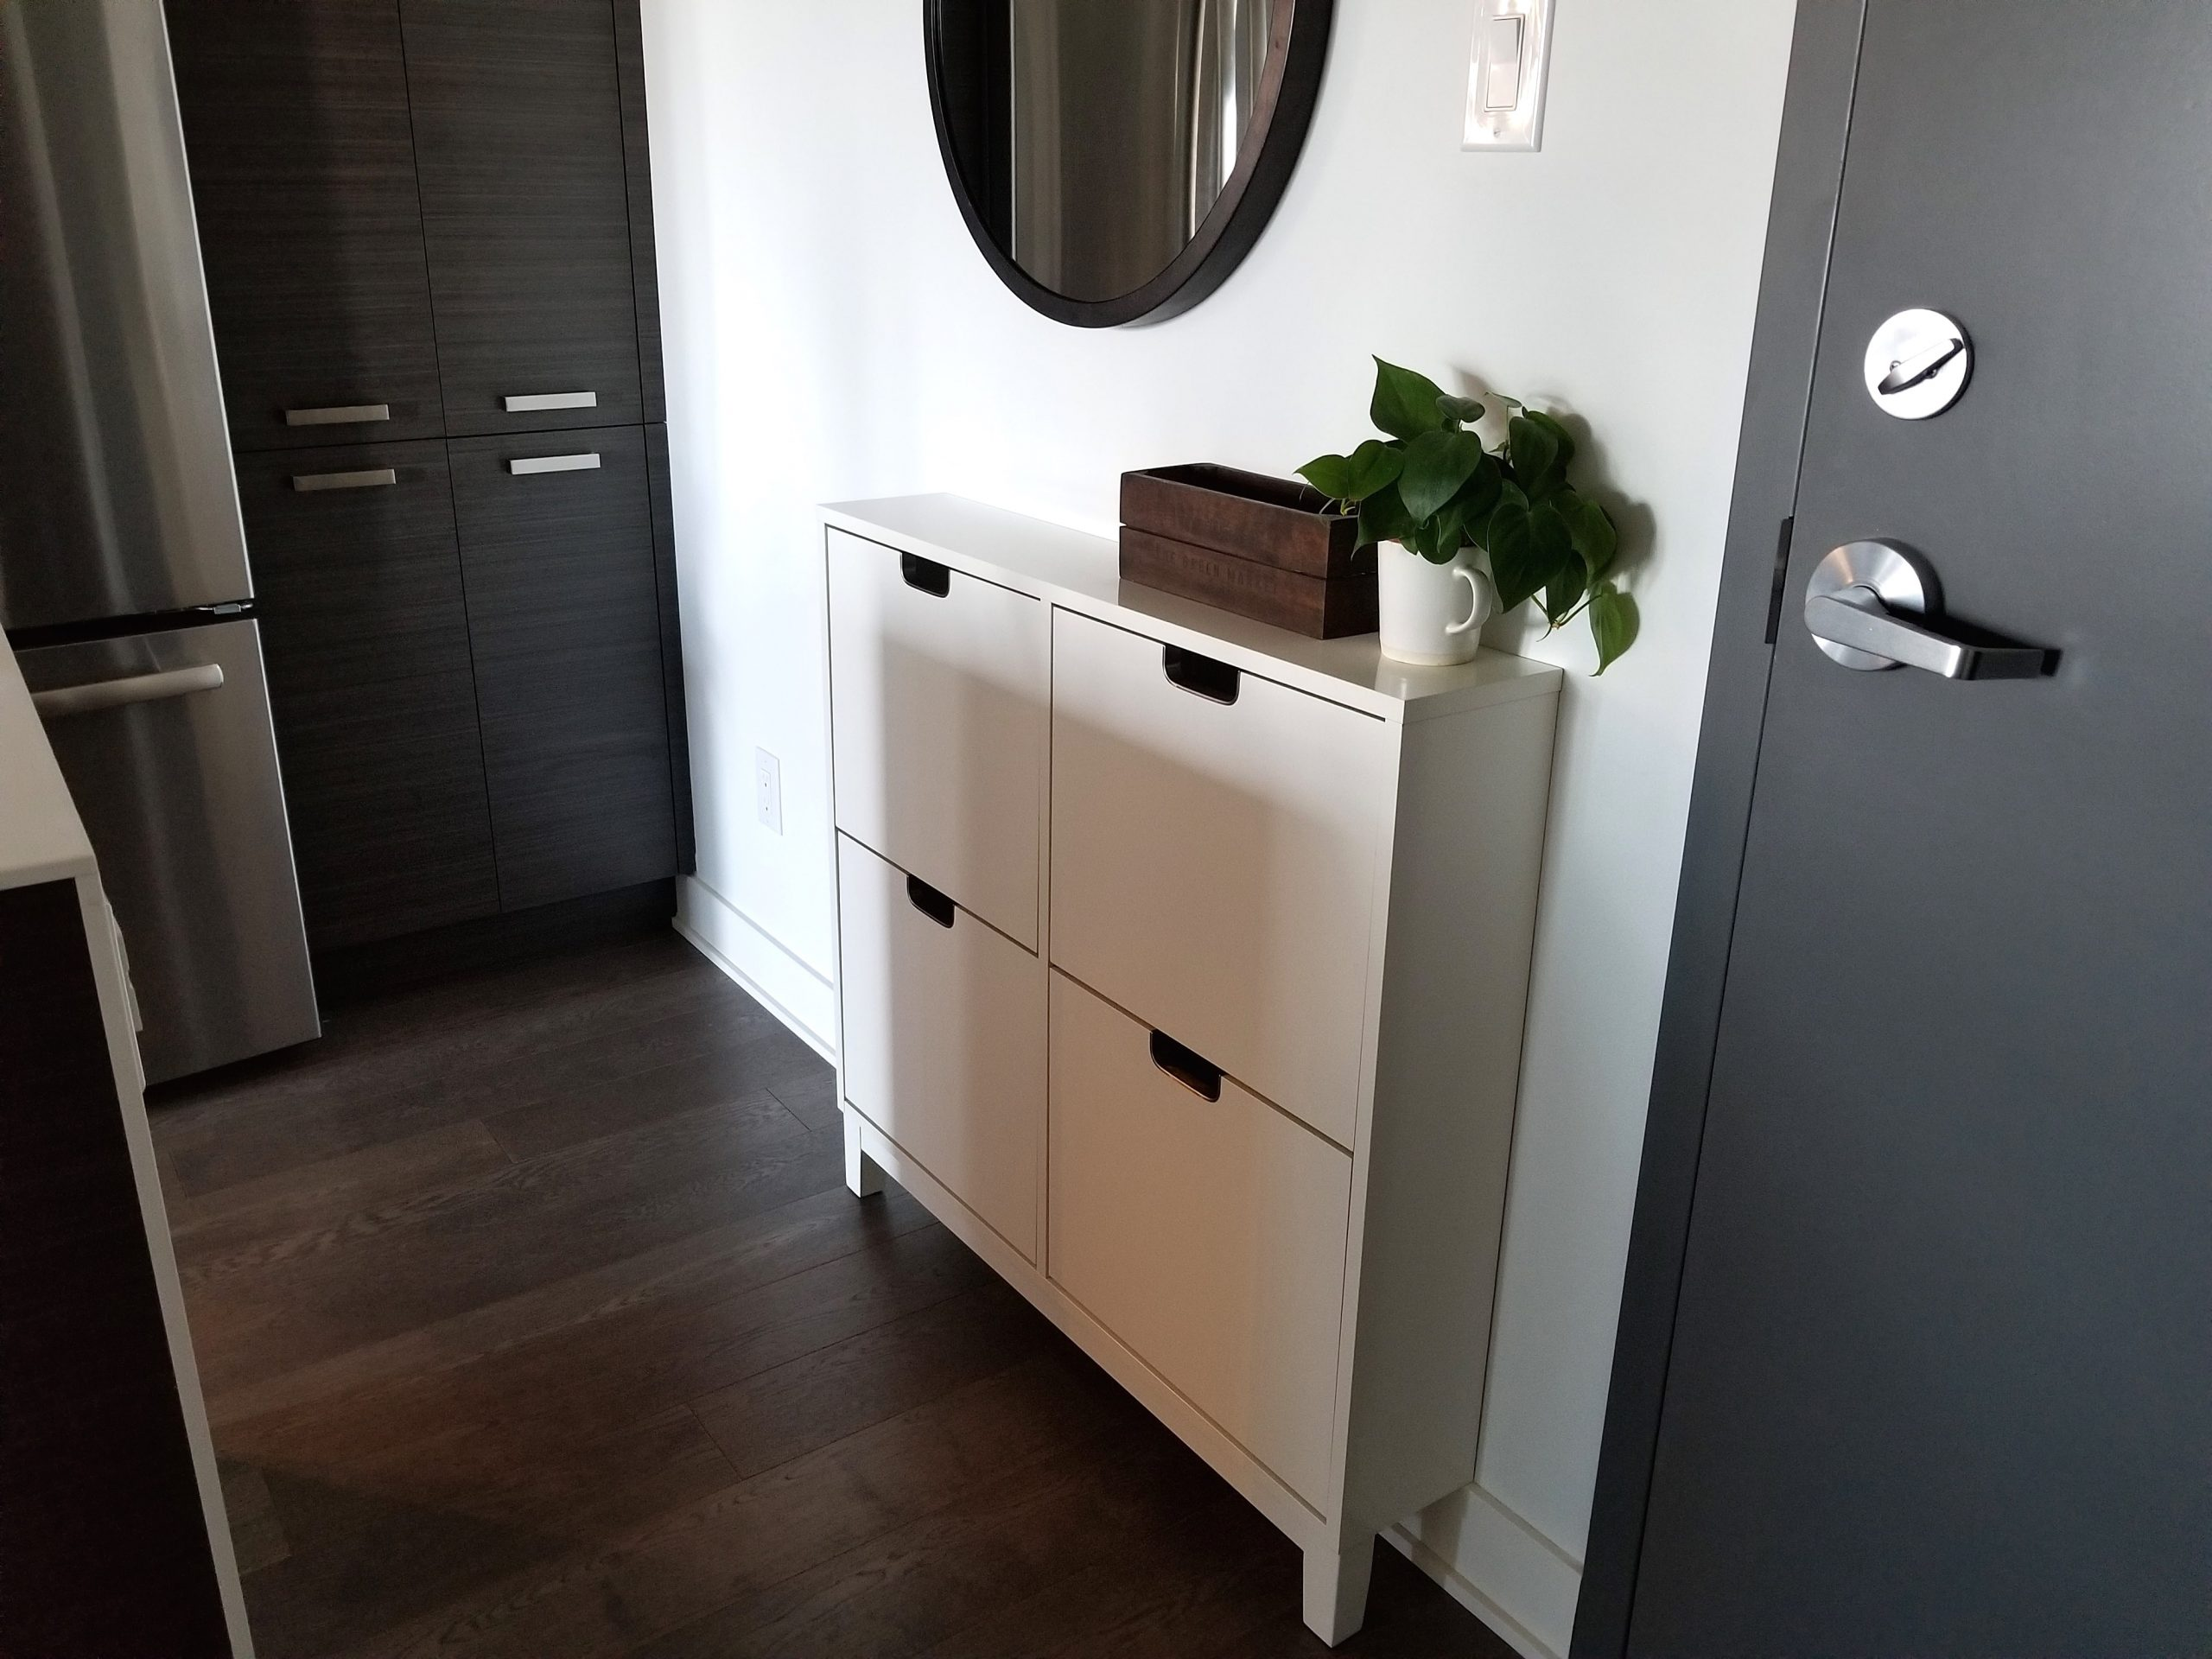 Storage Space 5 Ingenious Ideas For Small Spaces